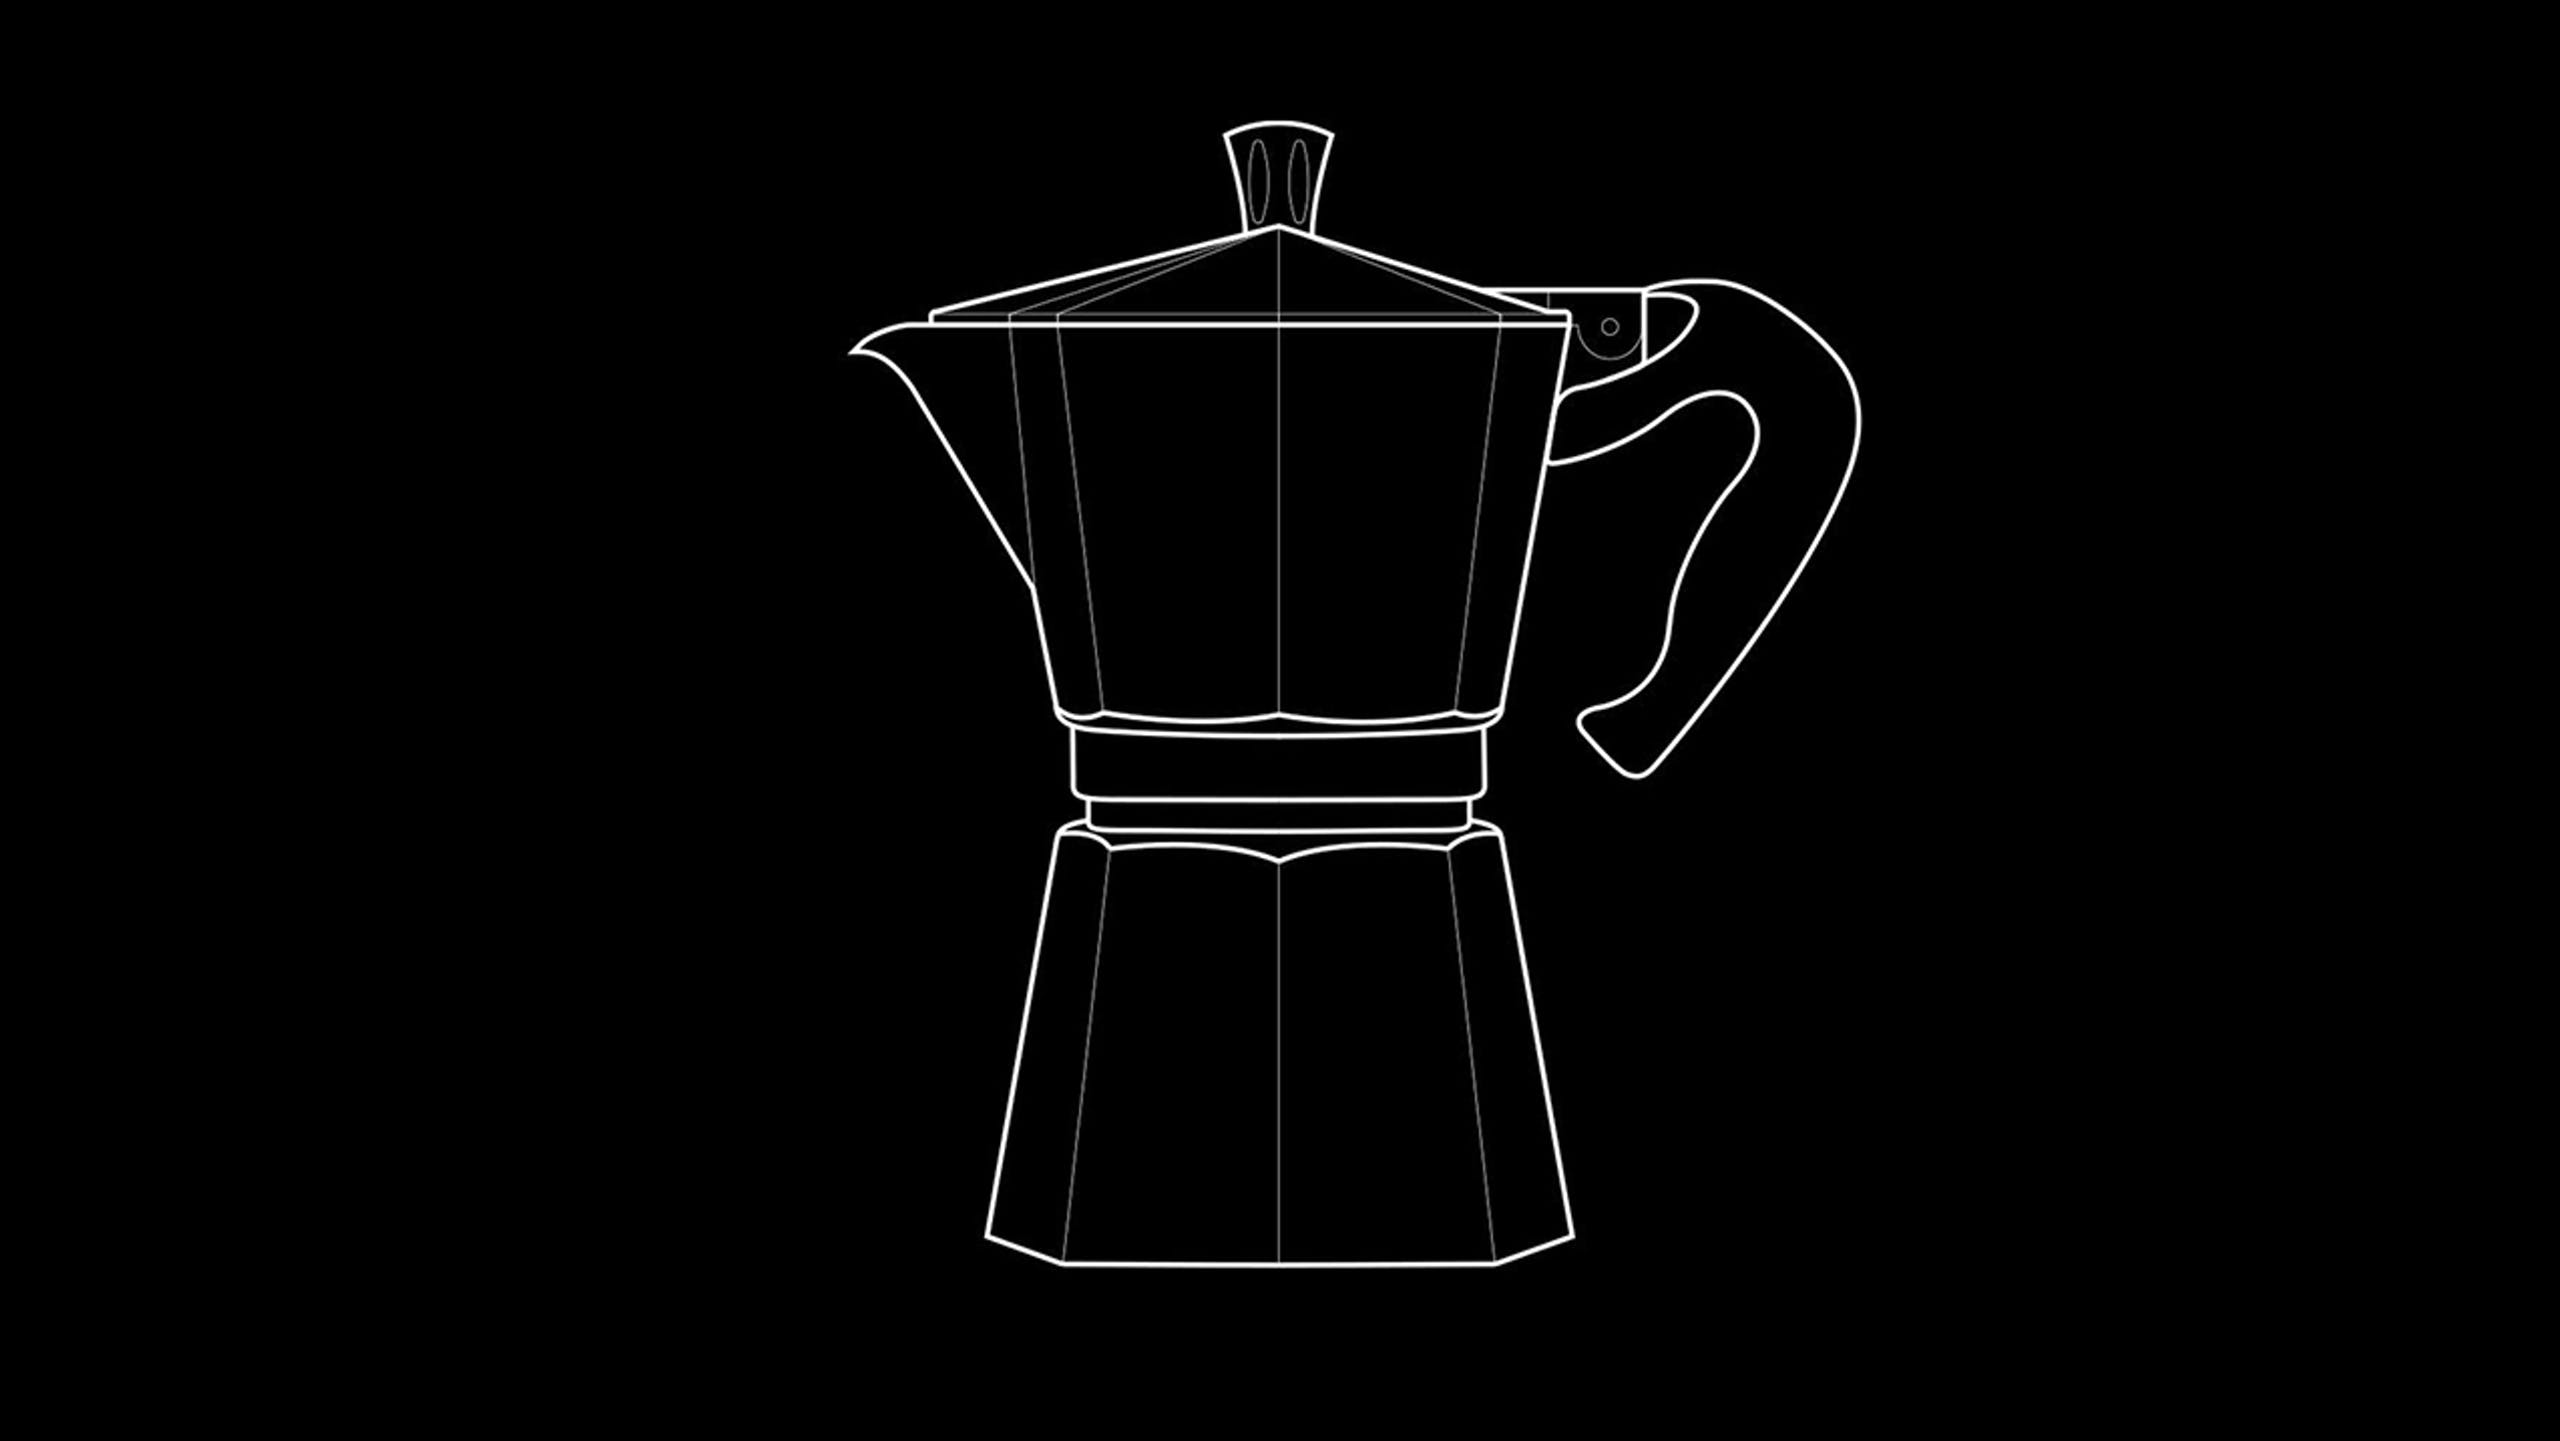 The moka pot brews coffee by passing boiling water pressurised by steam through ground coffee. Named after the Yemeni city of Mocha, it was invented by the Italian engineer Alfonso Bialetti in 1933 and quickly became one of the staples of Italian culture.